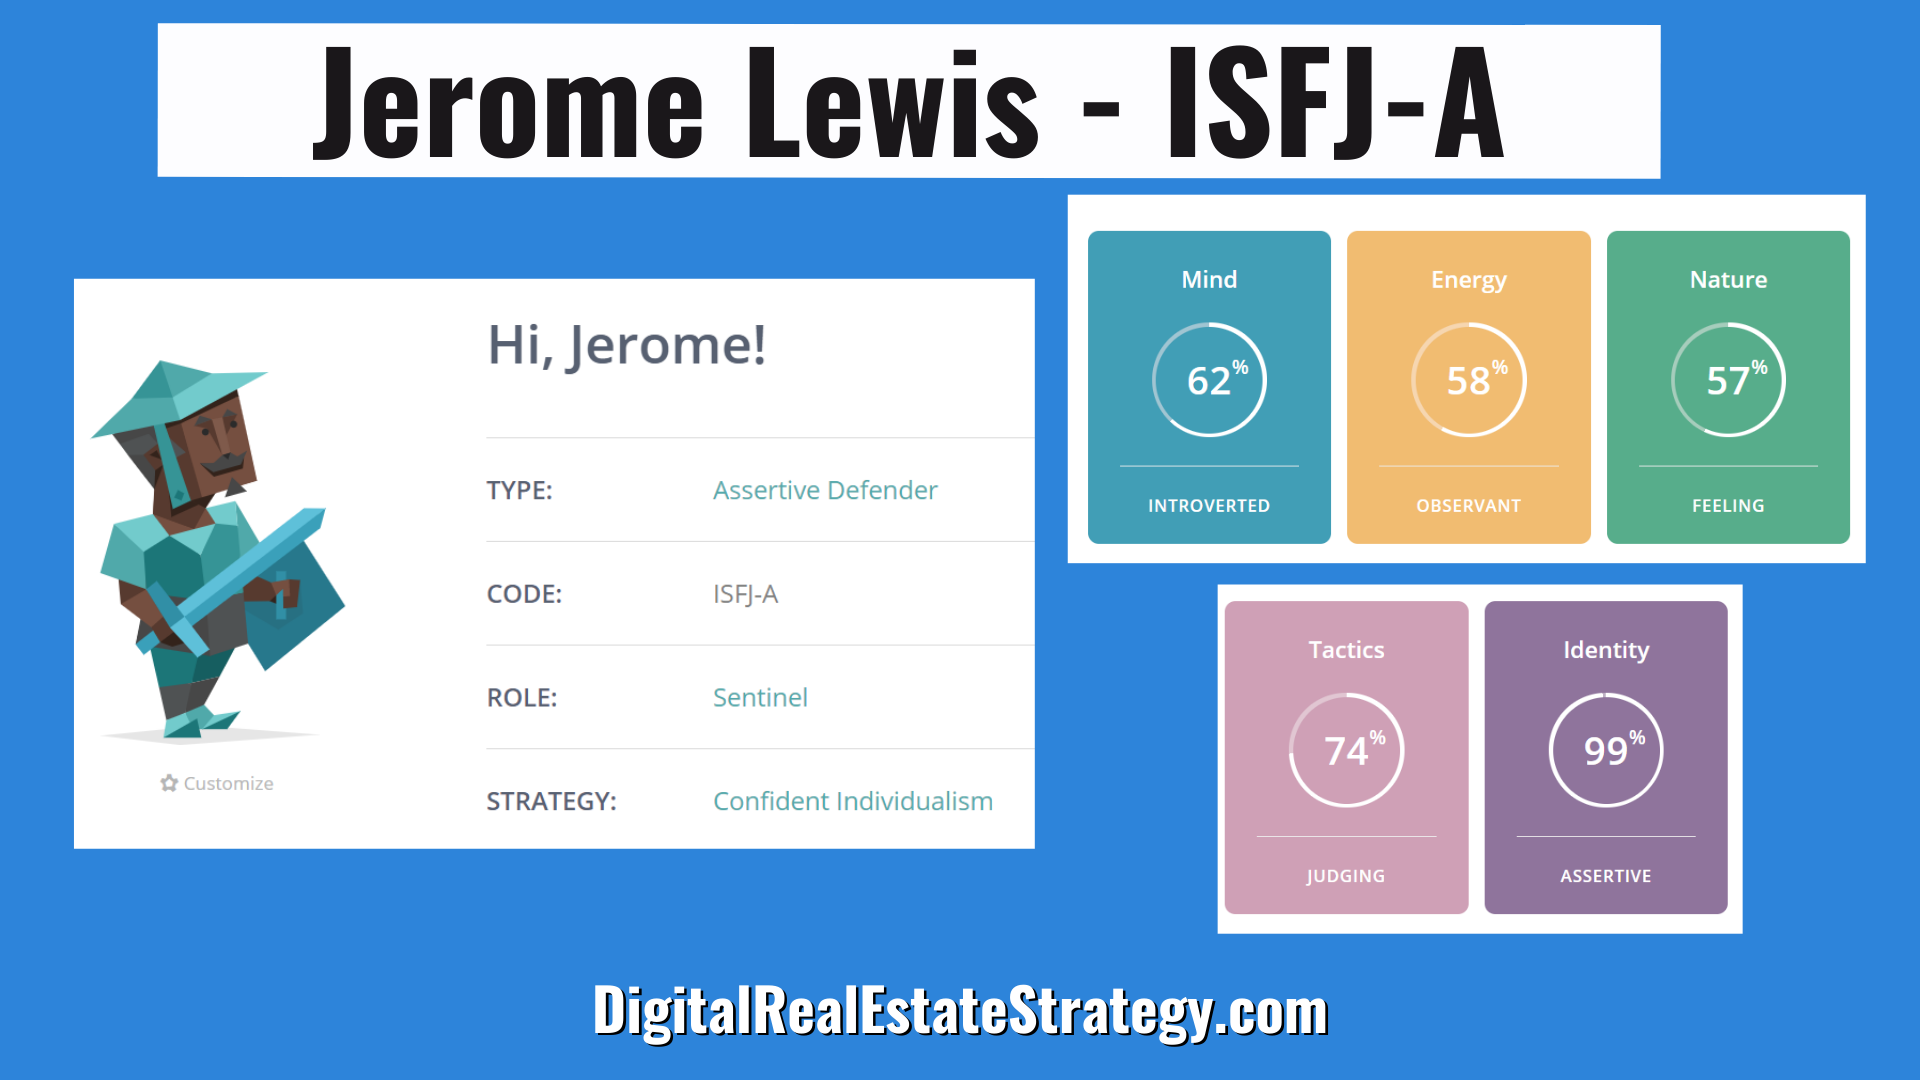 Jerome Lewis - 16 Personalities - Myers-Briggs - ISFJ-A.png